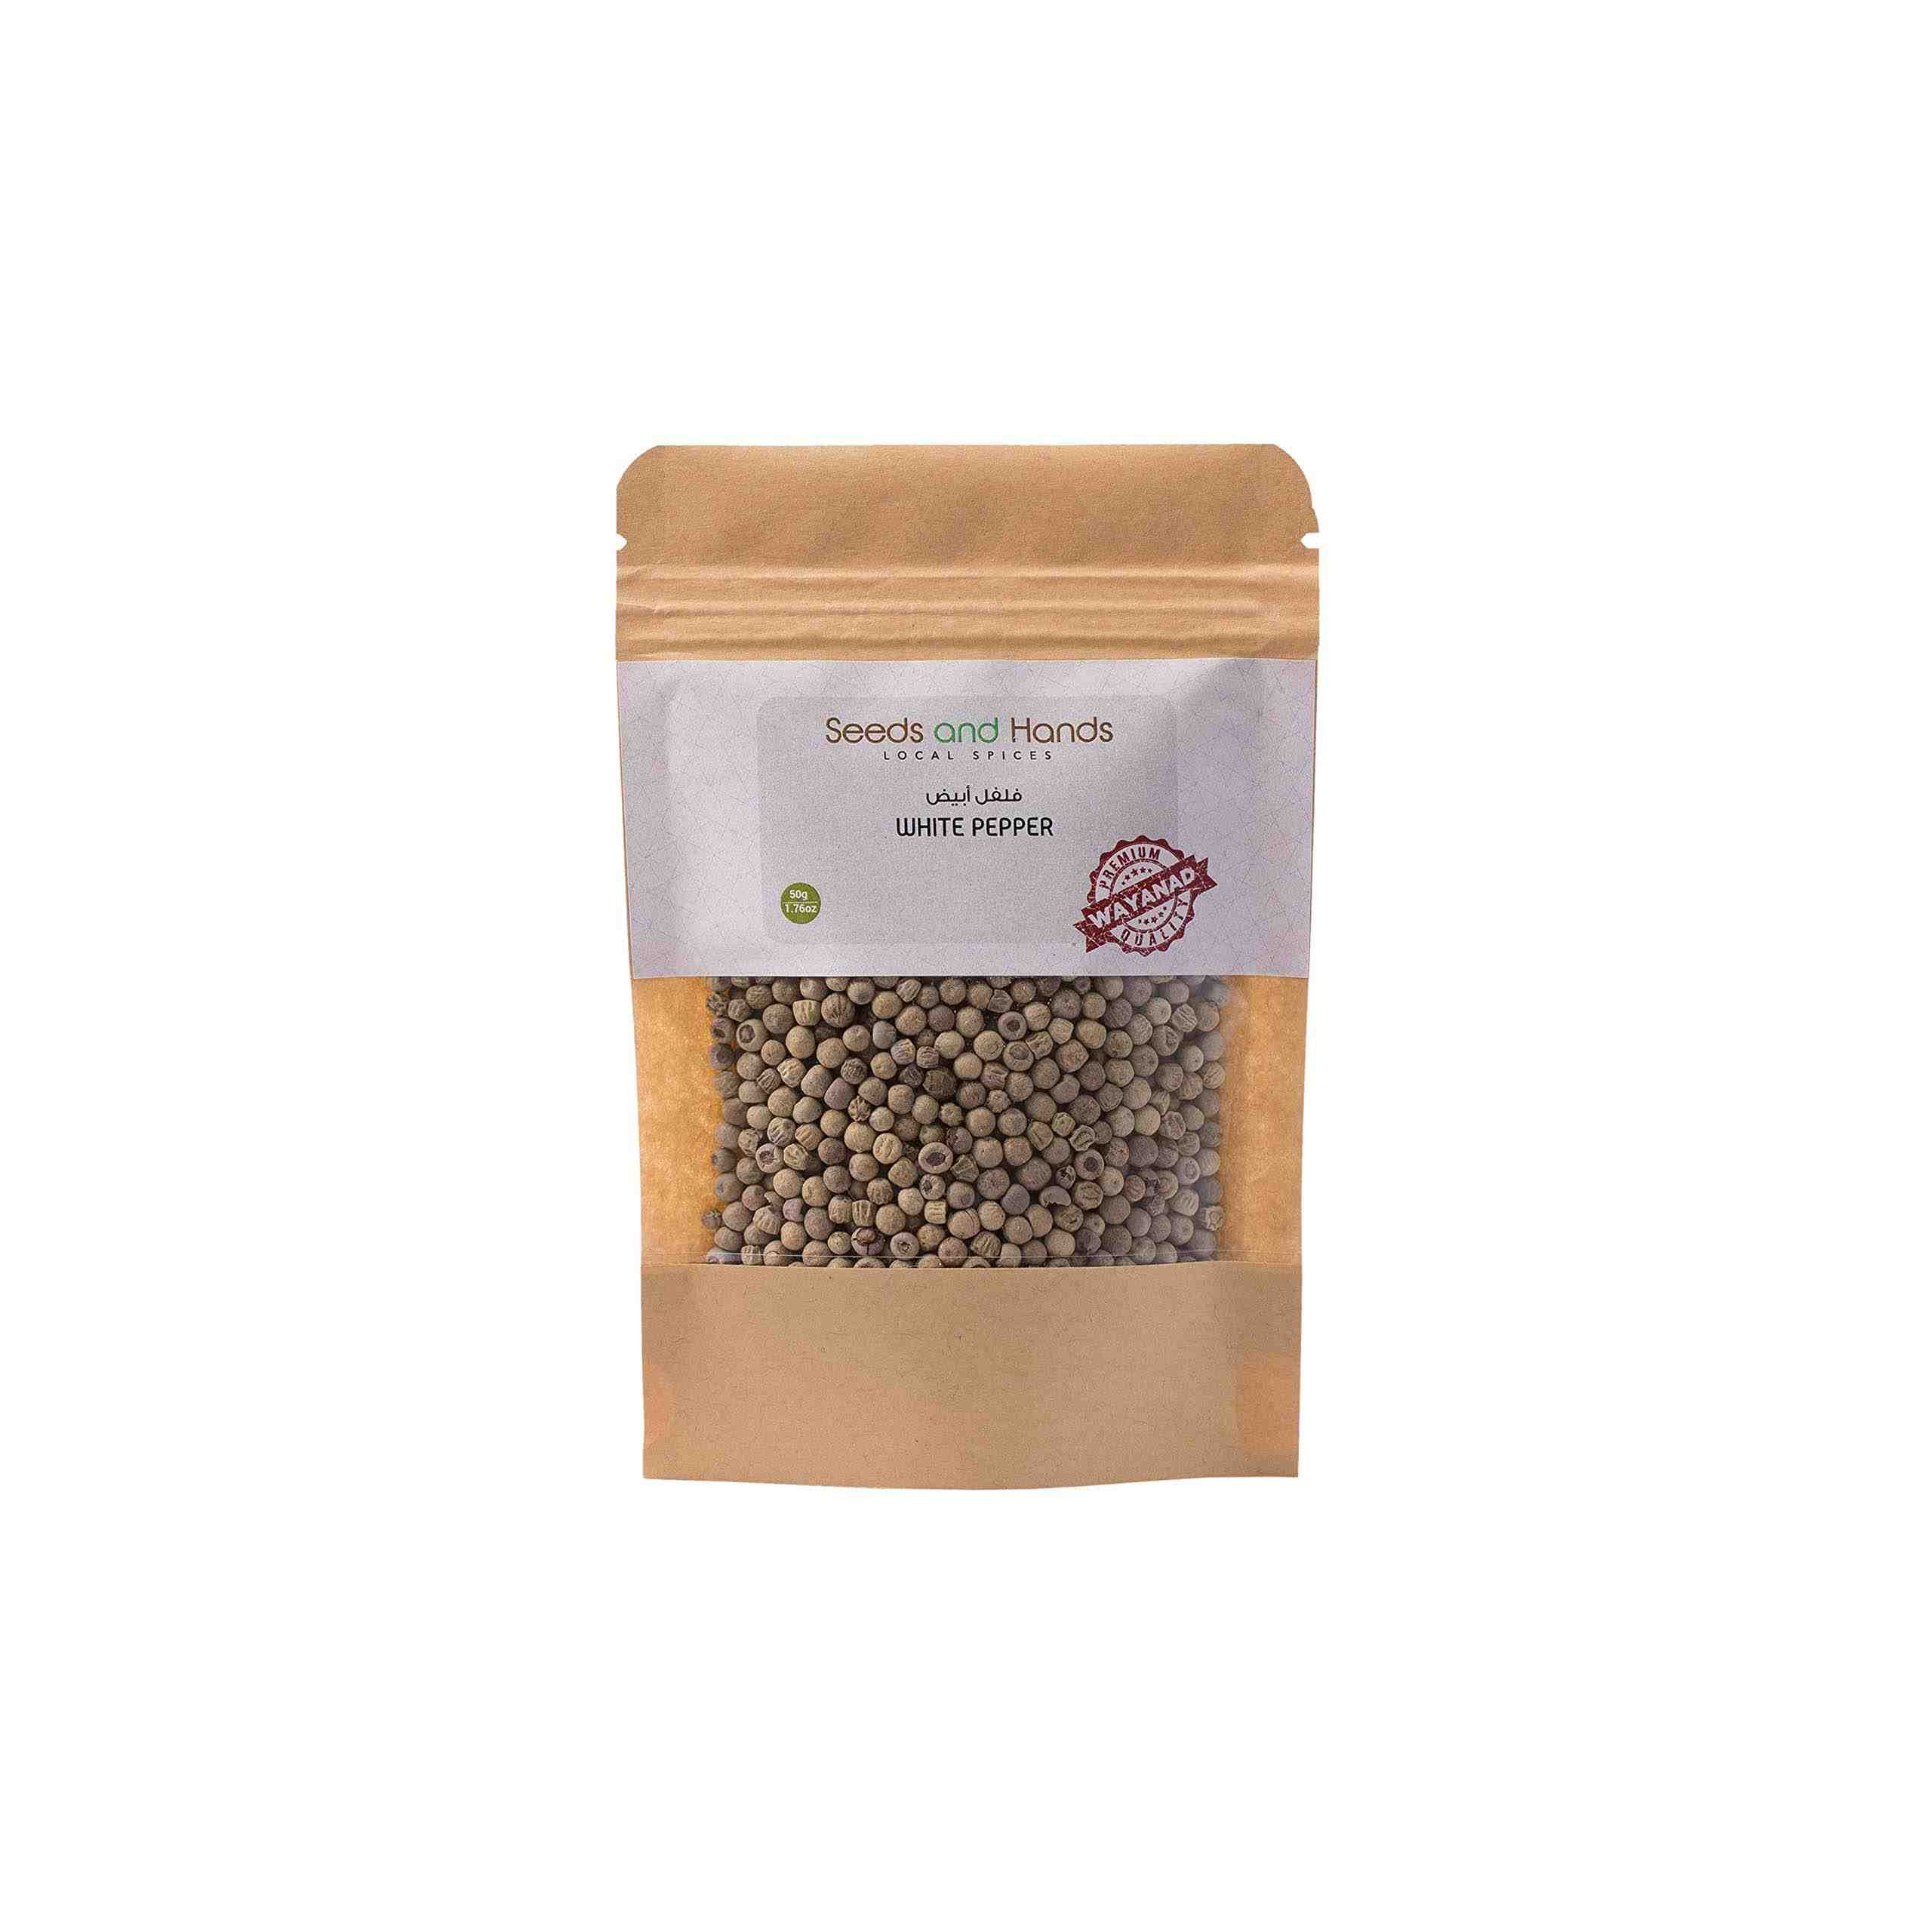 Seeds and Hands Wayanad White Pepper/Safed Mirch Whole [Pesticide Free] (50g)